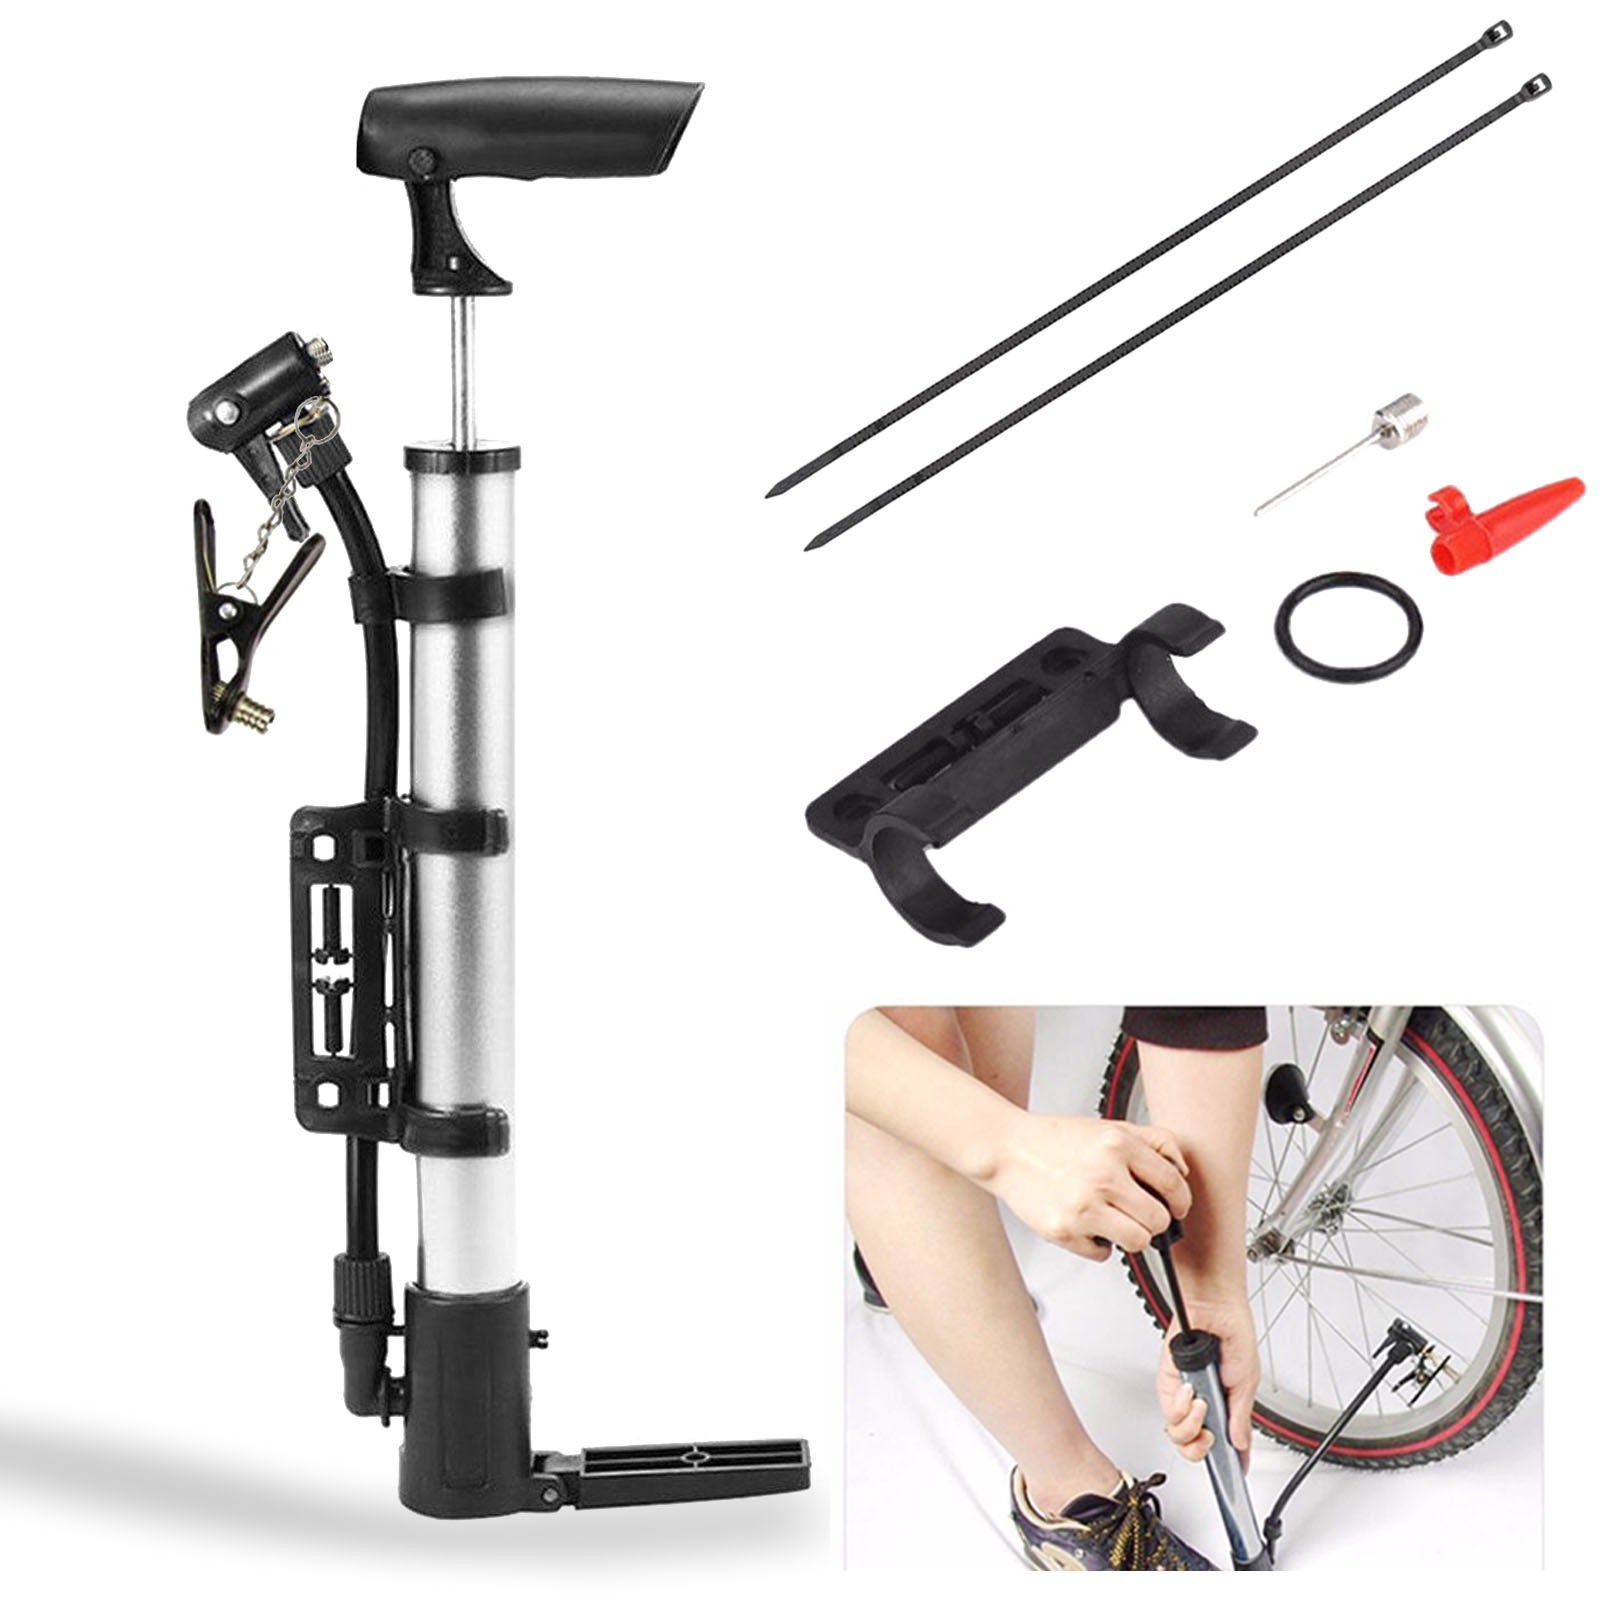 Sport Hand Air Pump Inflator for Bicycle Bike Cycling Tire Basketball Football